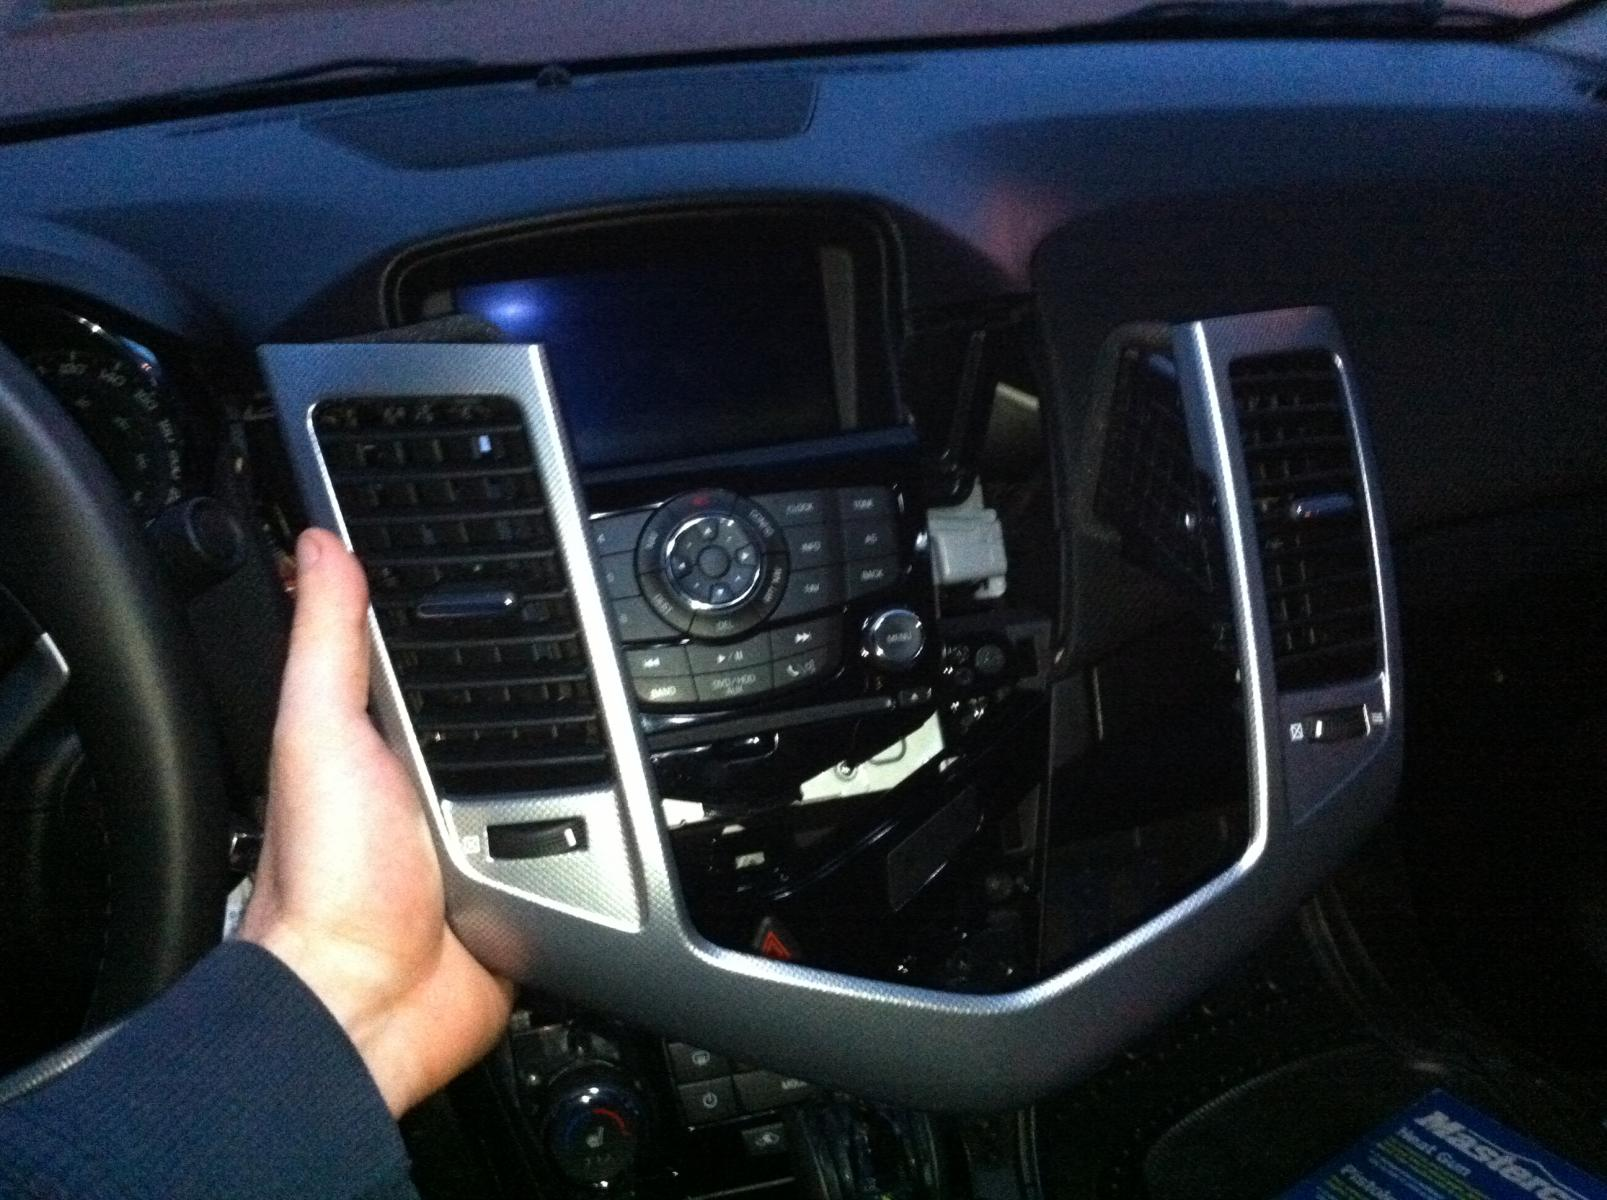 how to get rid of scratches on plastic car interior